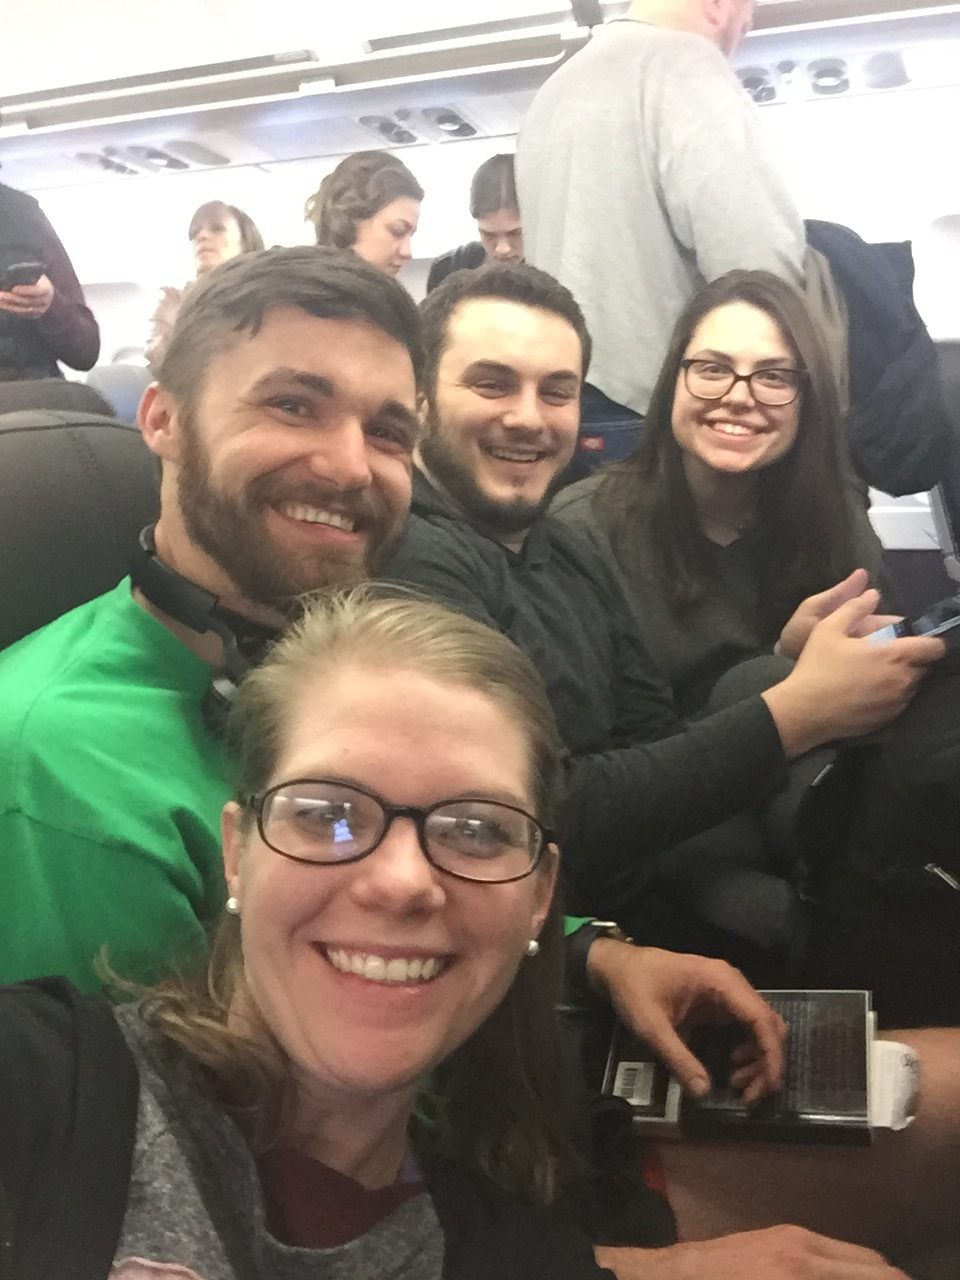 We made friends on the 6 hr plane ride from London to Pisa! Yall were so fun William and Eva!